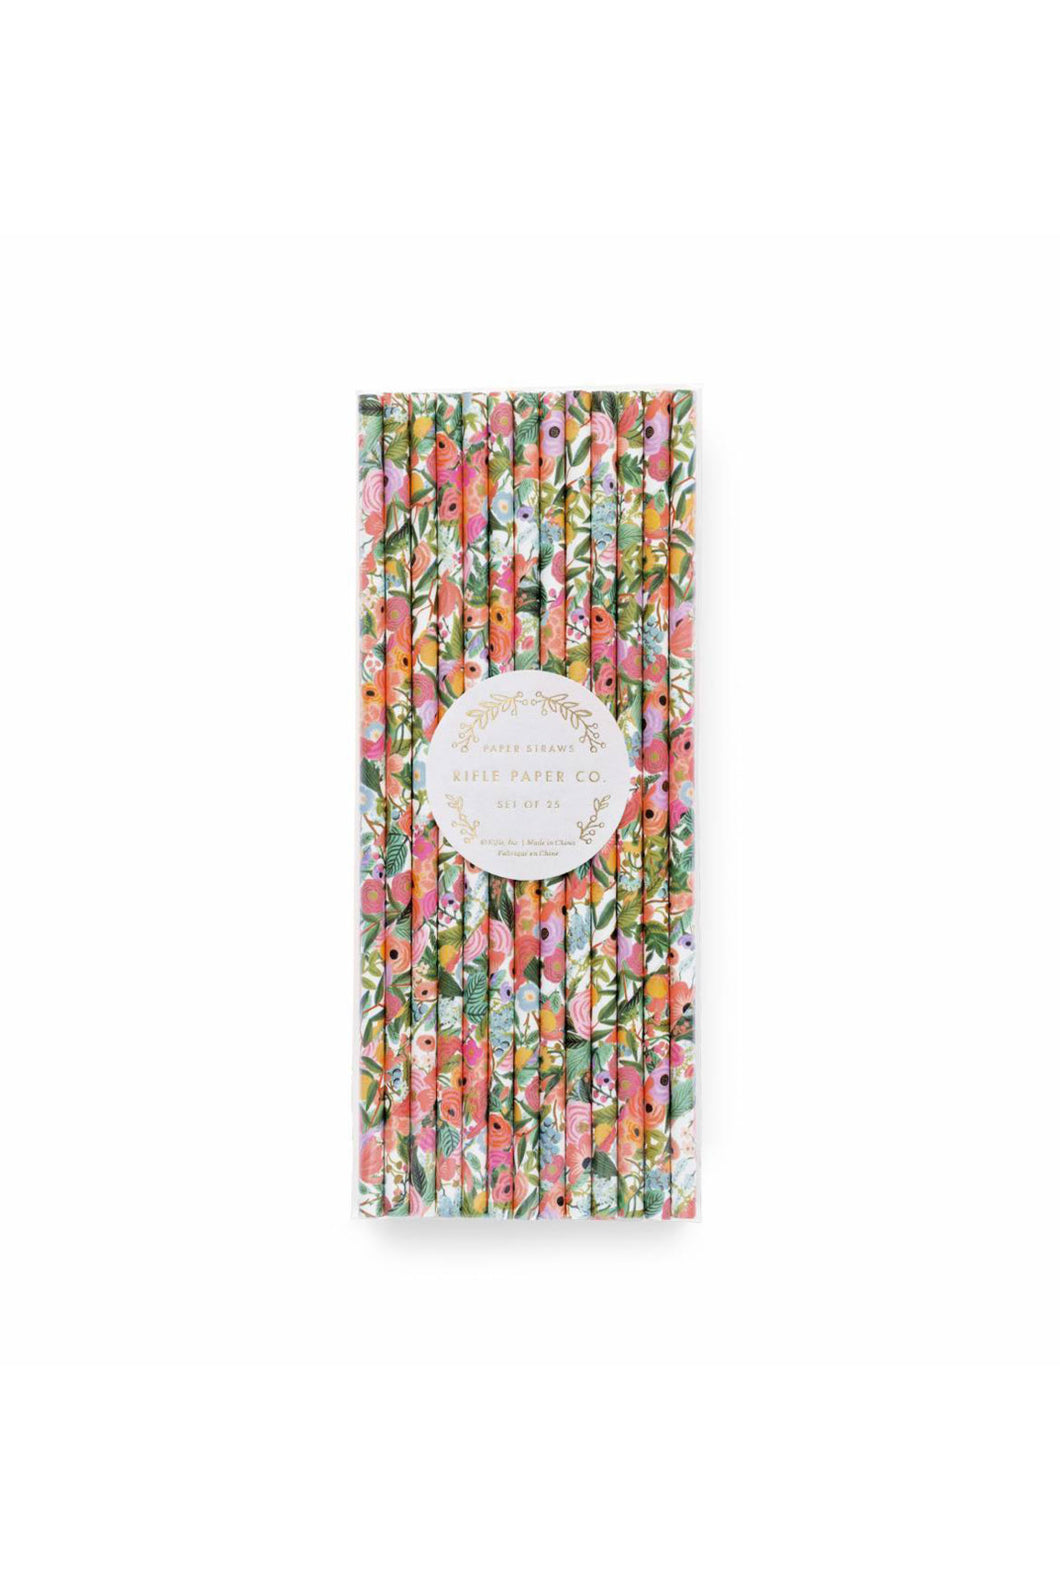 Rifle Paper Co - Paper Straws - Set of 25 - Garden Party